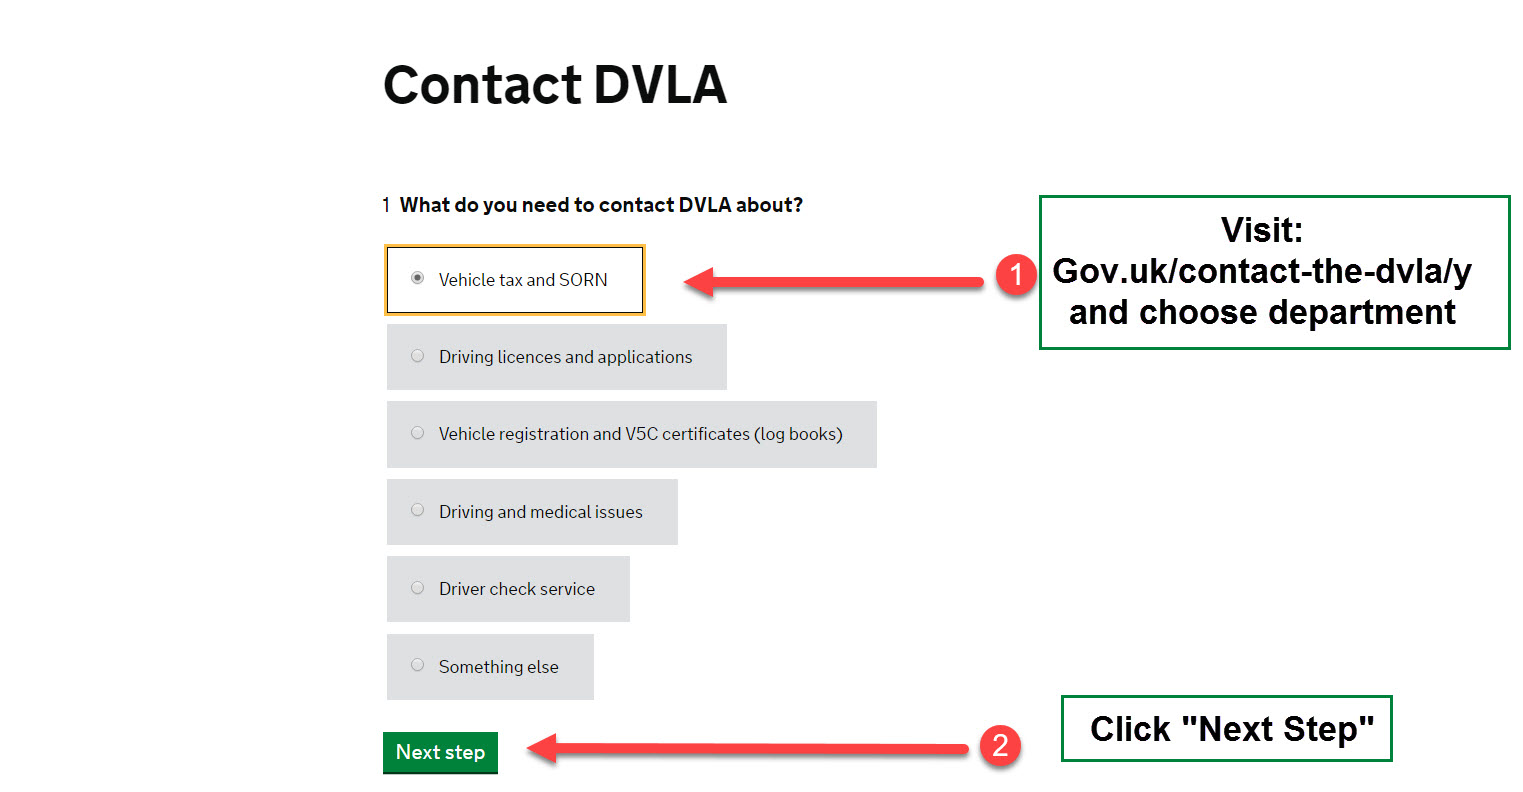 How to contact DVLA